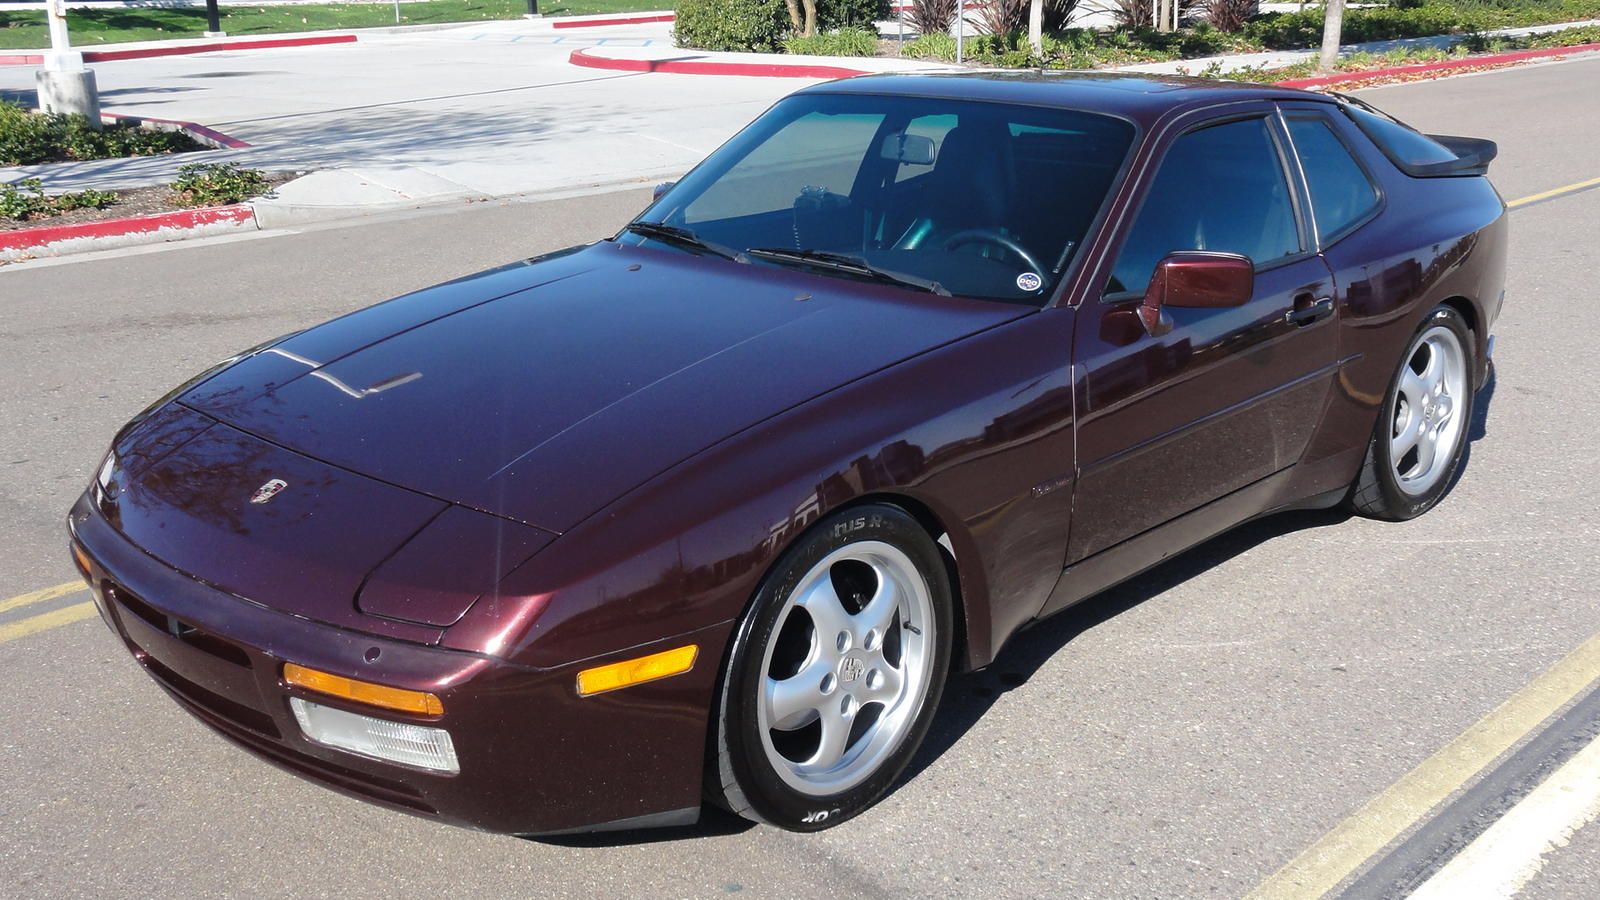 Car Window Replacement 1990 Porsche 944s2 - Rennlist - Porsche Discussion Forums